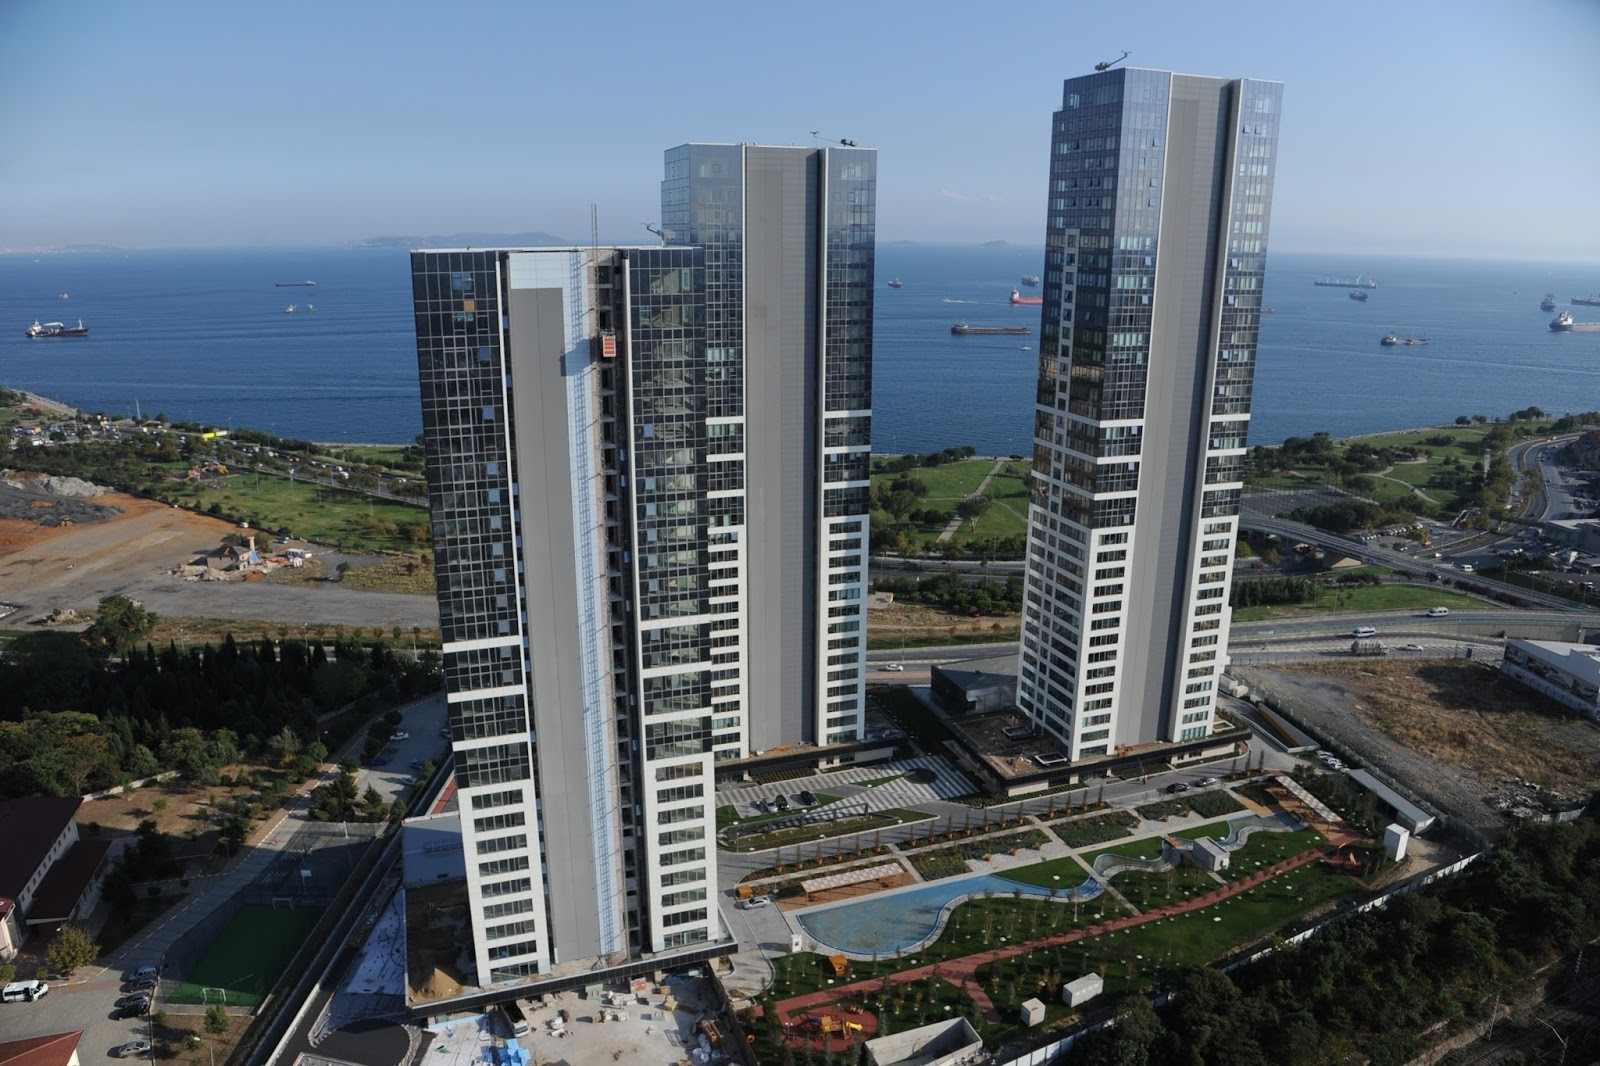 Turkey Orders Demolition of Three 'Illegal' Residential Towers, Image via istanbulucuyorum.blogspot.co.uk